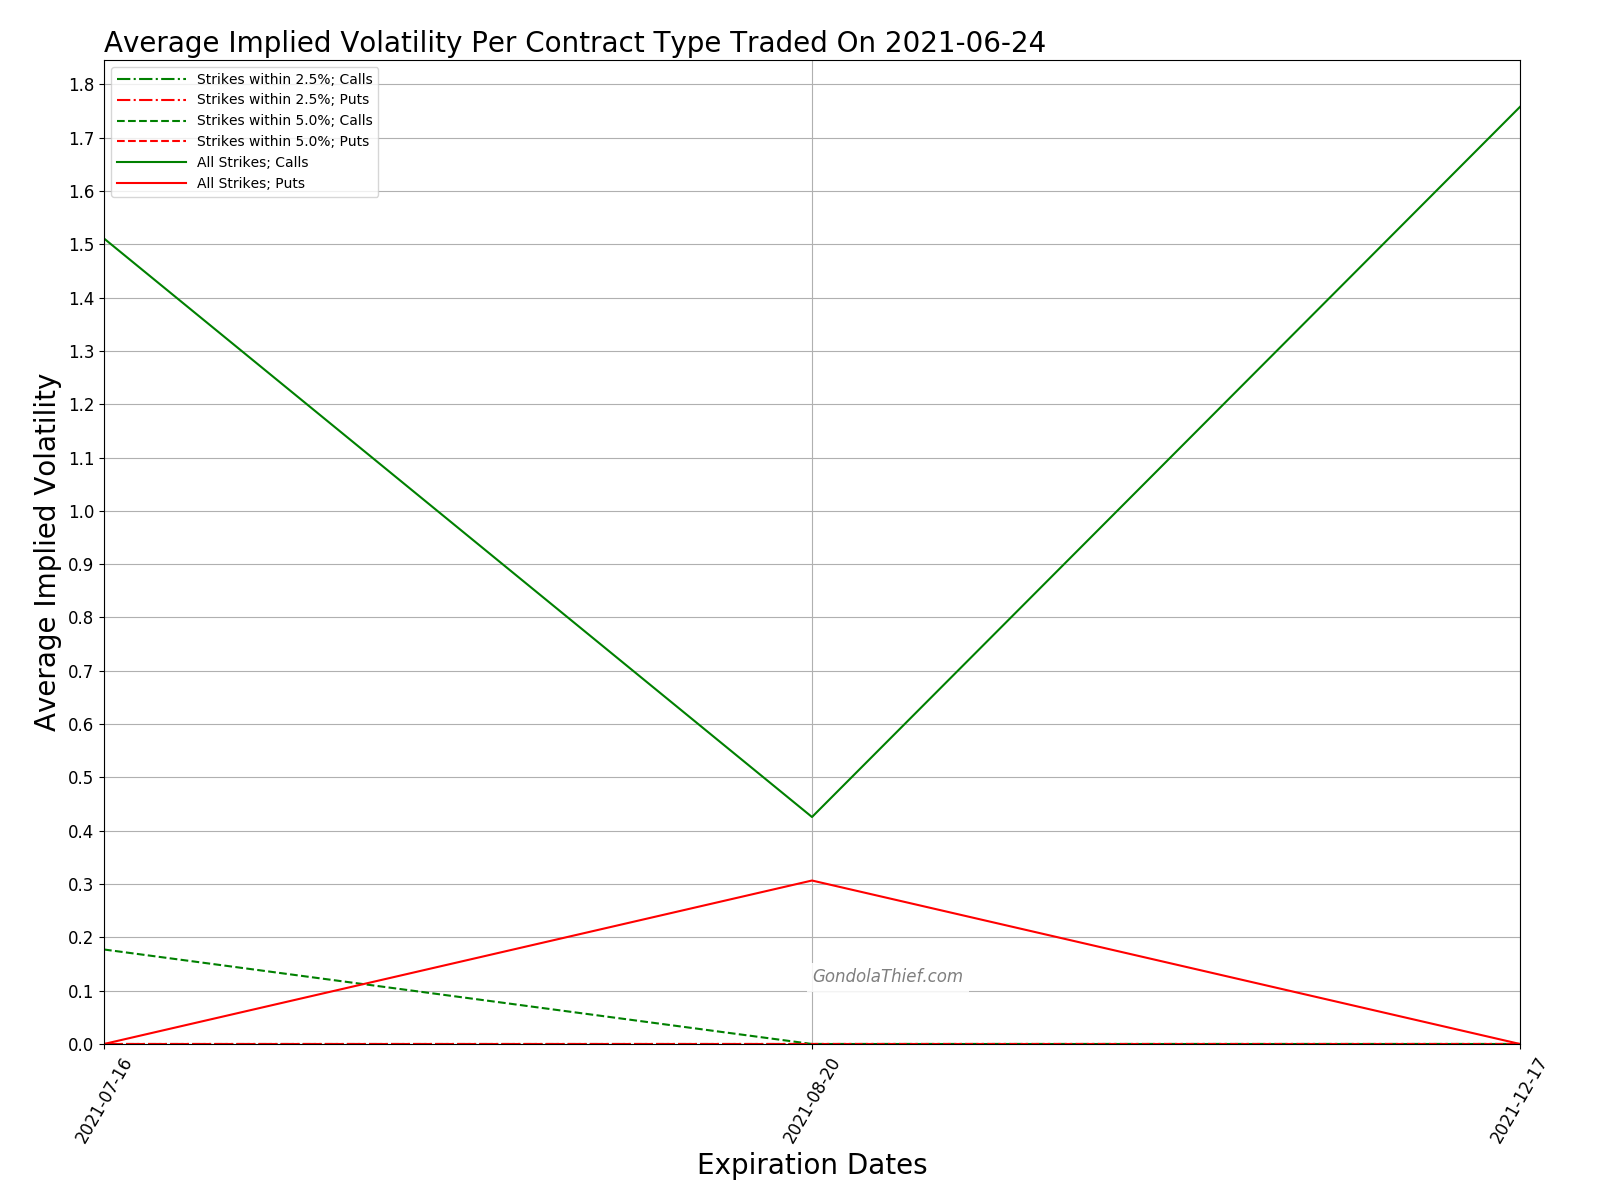 Graph of Average Implied Volatility Per Contract Type